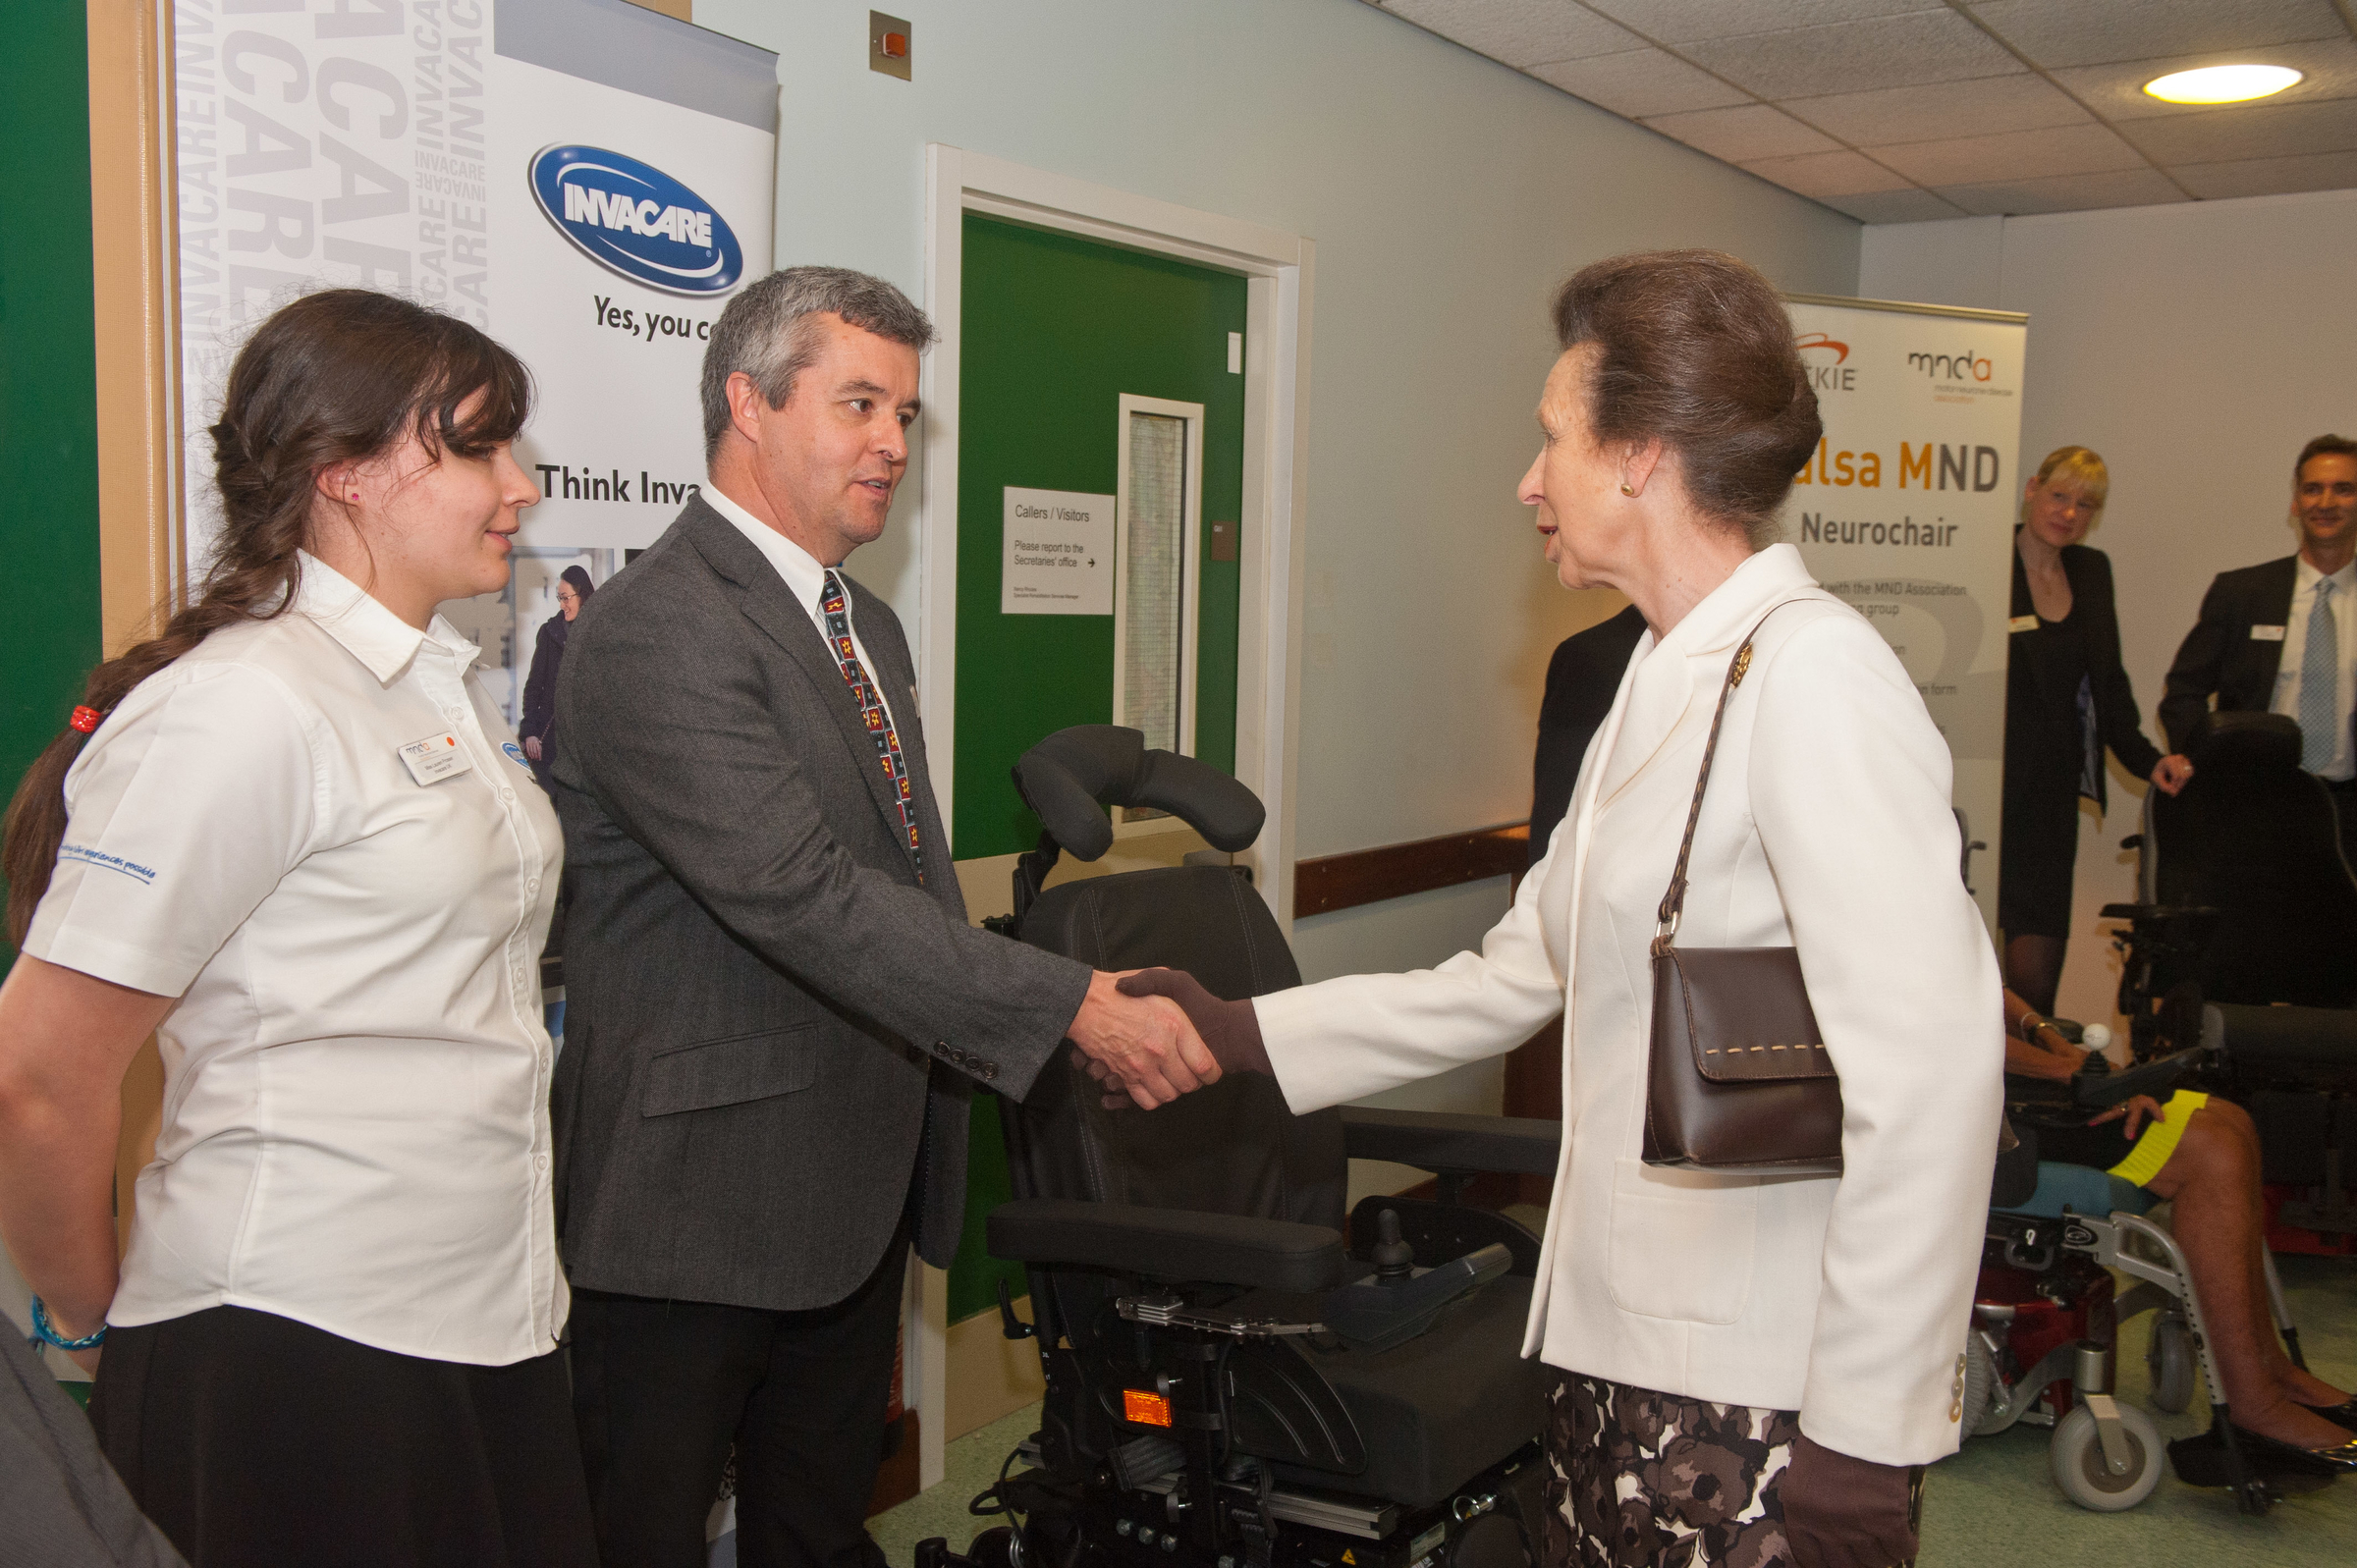 Invacare joins MND Association's New Centre Officially launched by HRH The Princess Royal